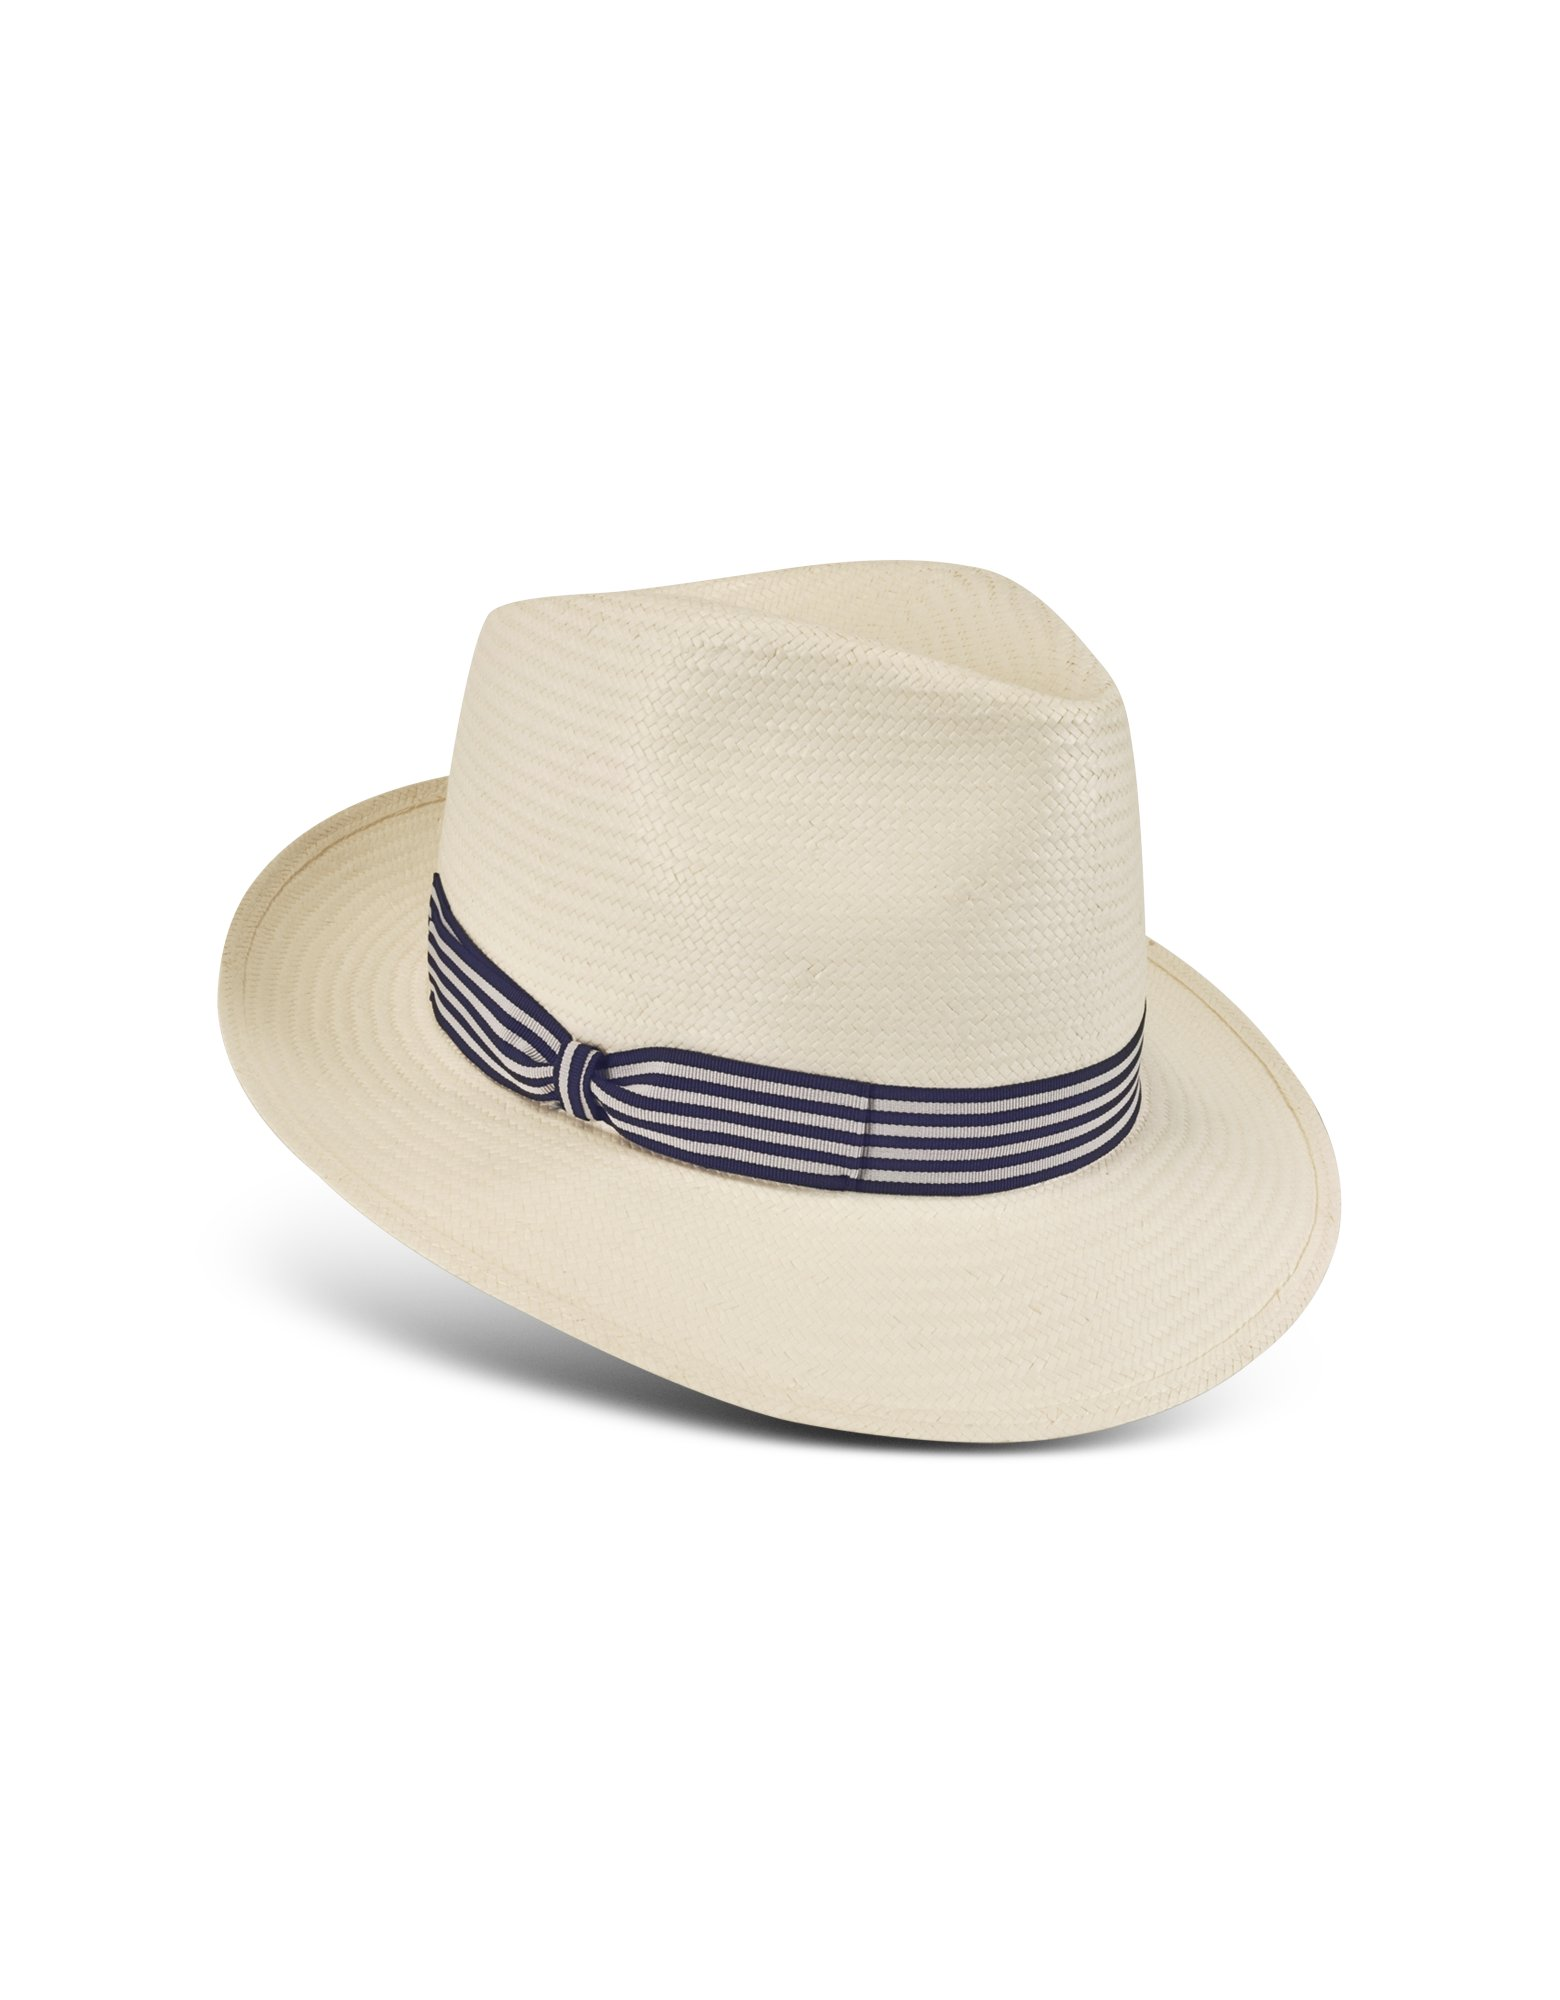 e7a1bee1a4b Lyst - Borsalino Blue and White Stripe Band Panama Hat in White